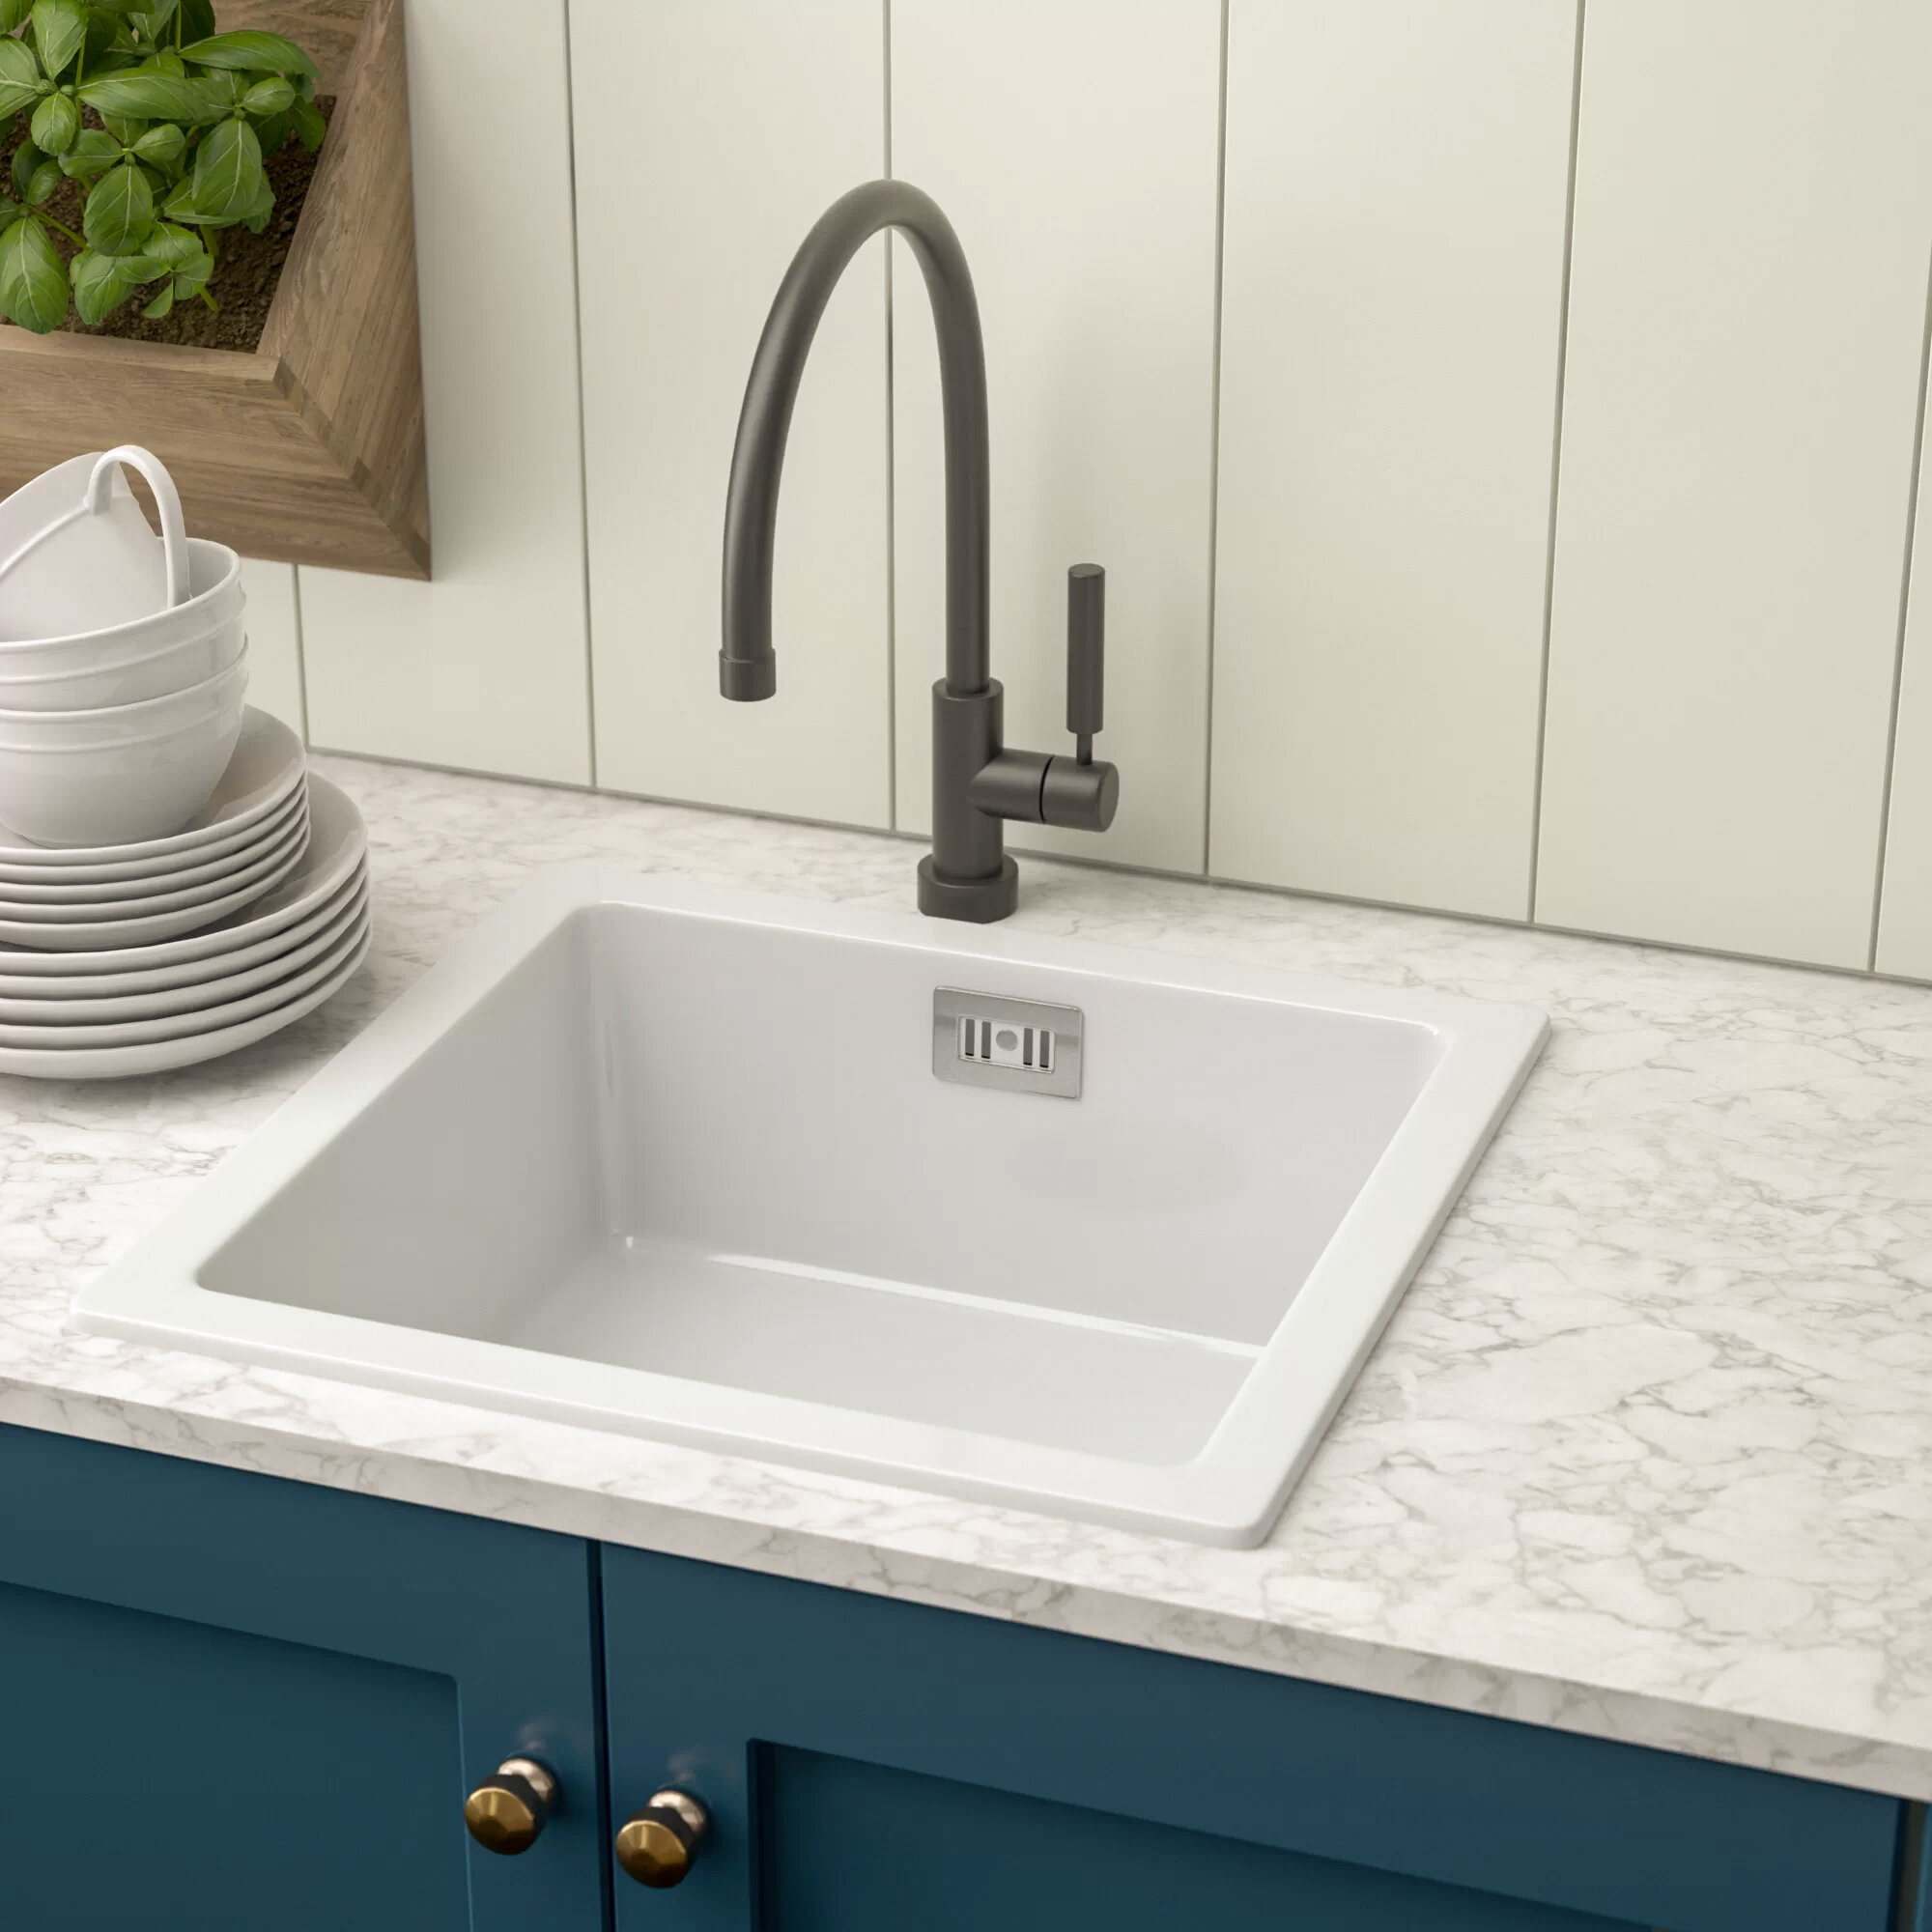 Cda Single Bowl Inset Kitchen Sink Wayfair Co Uk